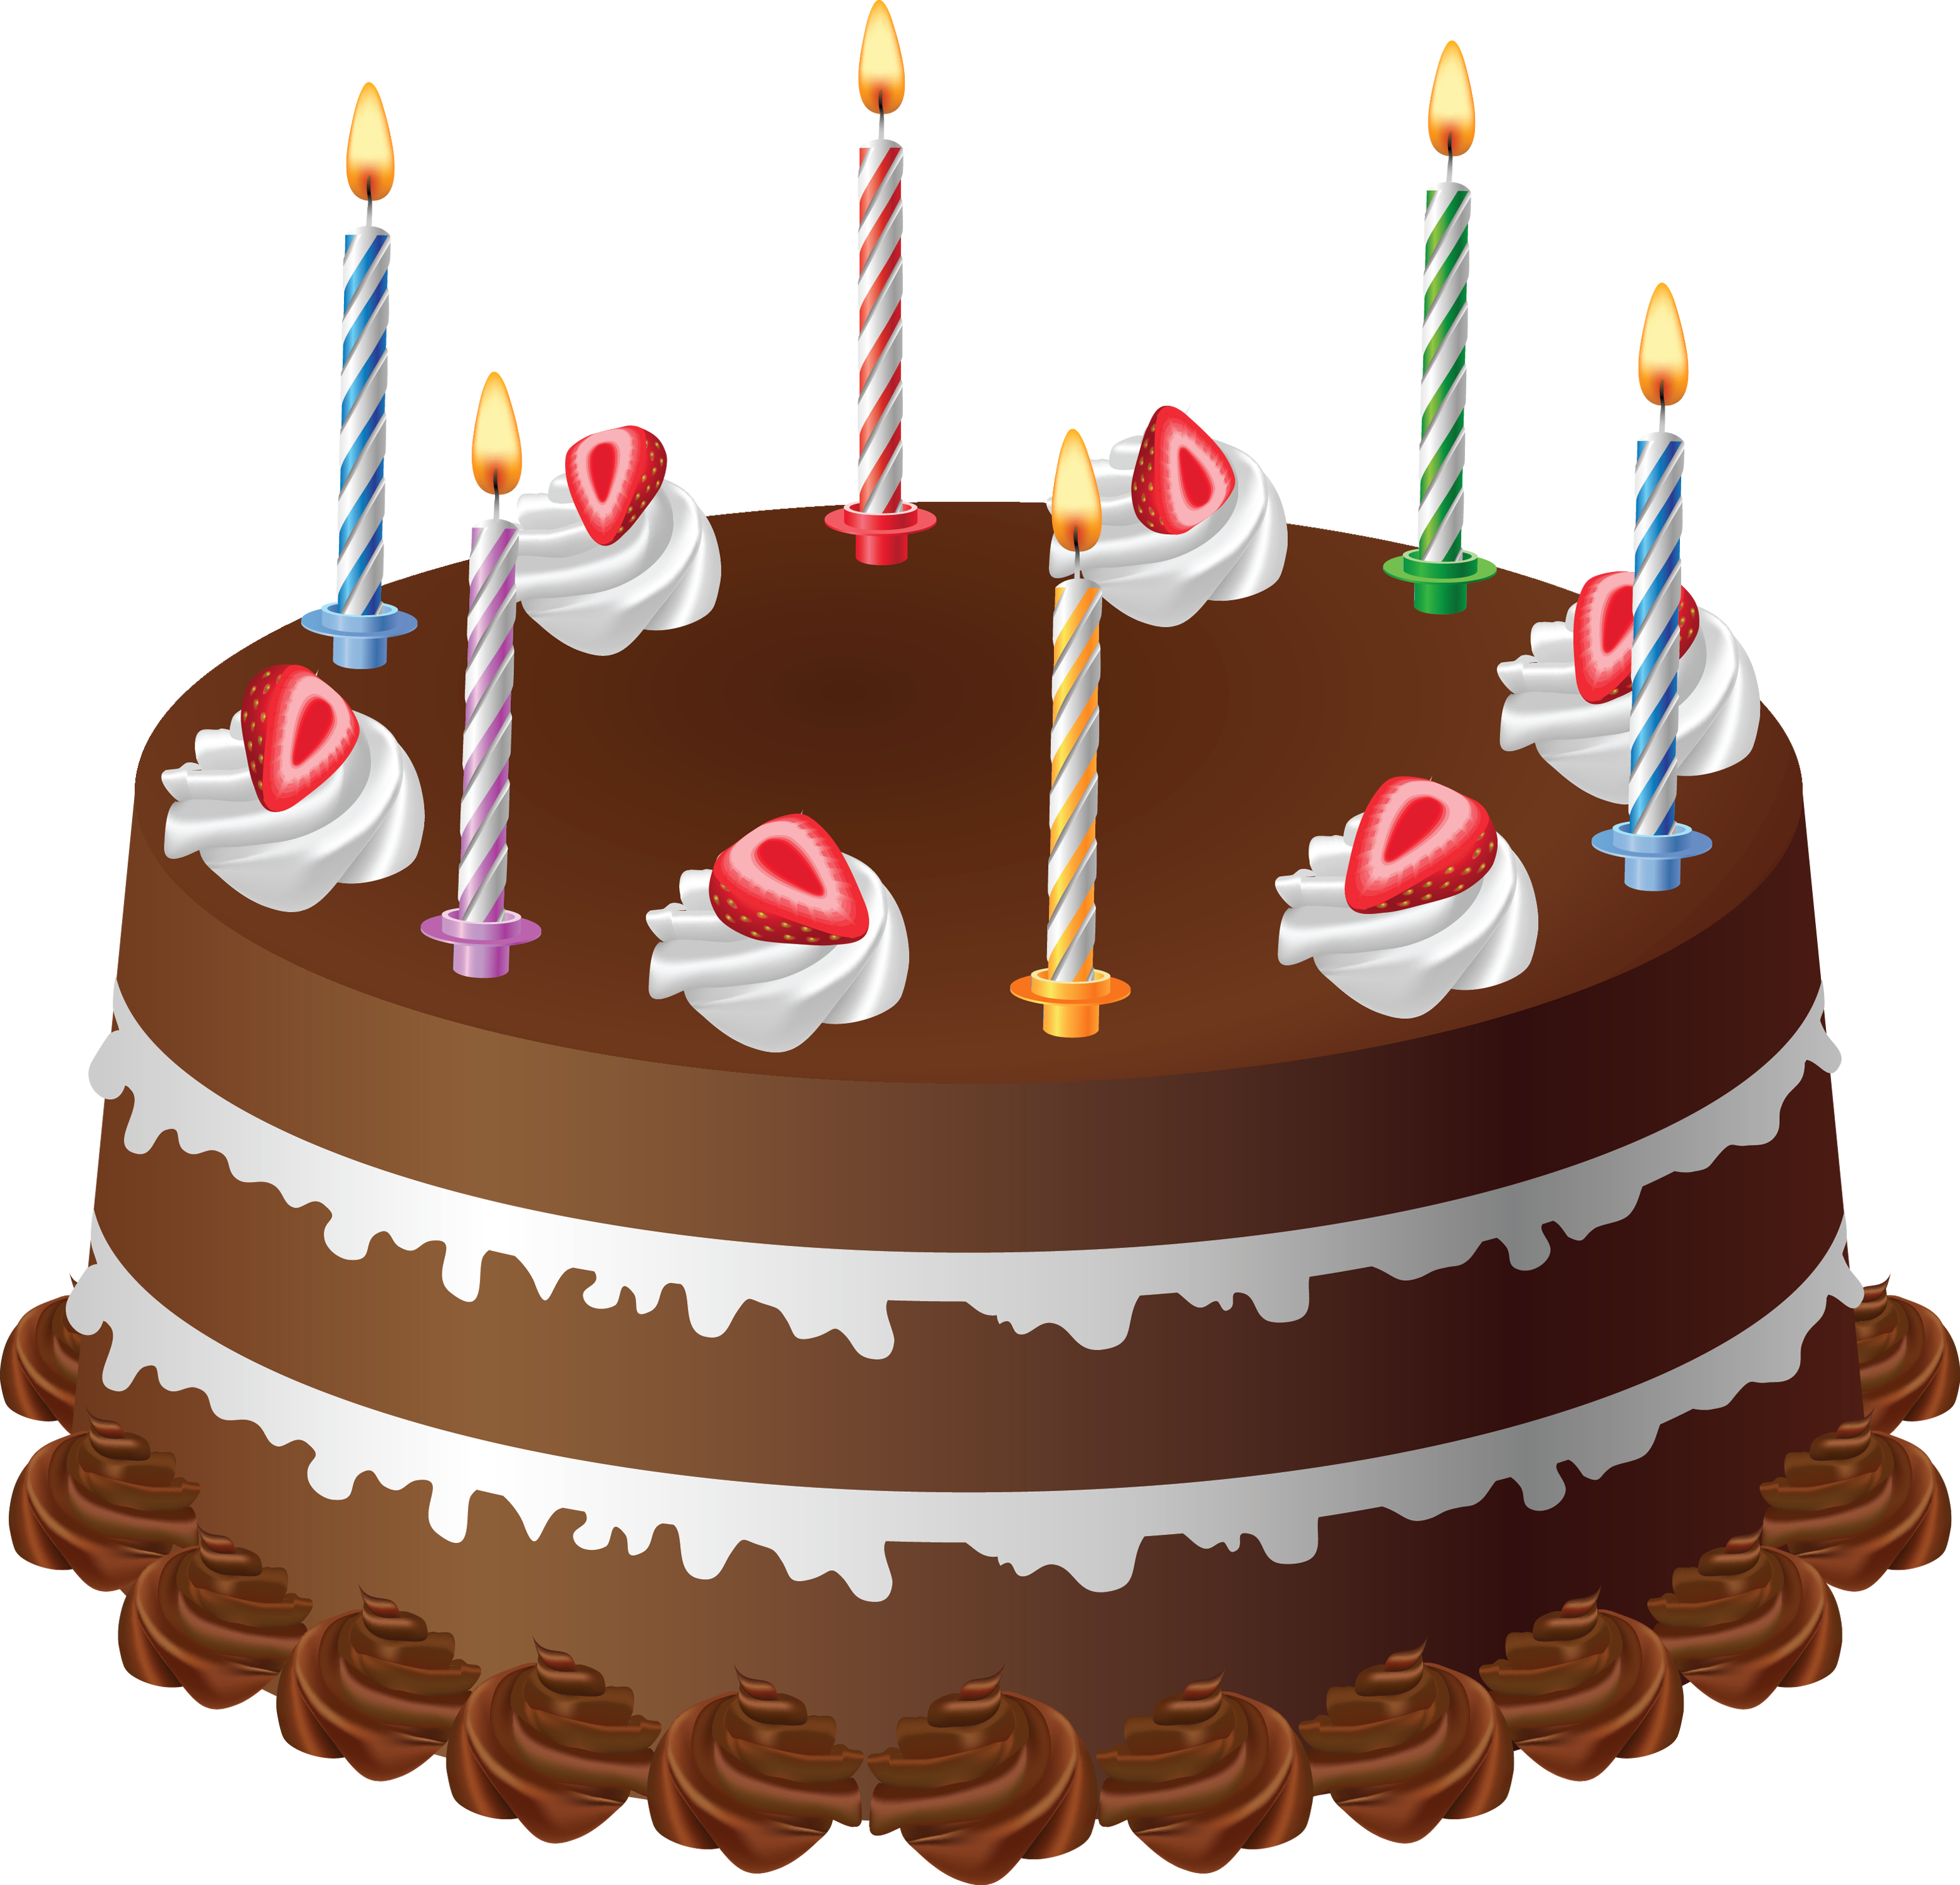 Dessert clipart cake. Chocolate with candles art